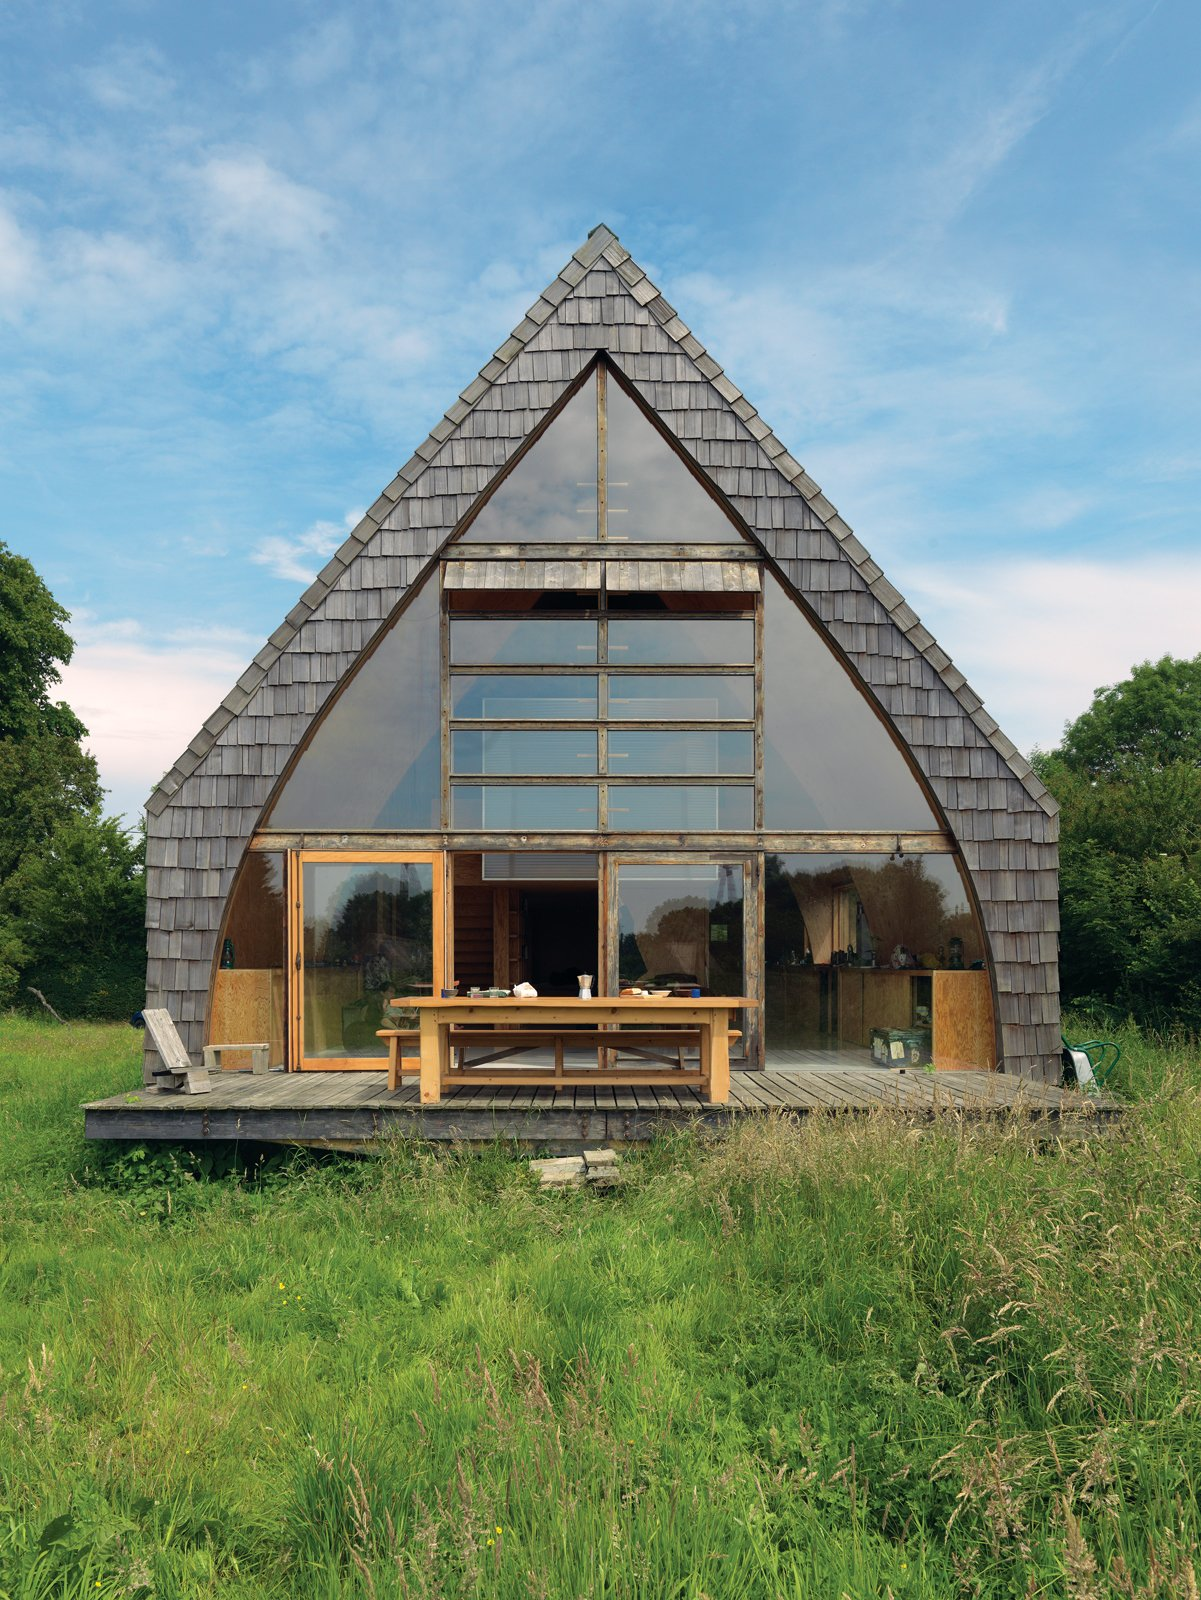 """Exterior, Cabin Building Type, House Building Type, A-Frame RoofLine, Shingles Roof Material, and Wood Siding Material """"I didn't want the kind of manicured garden that would mean I'd have to come out on weekends and mow the lawn,"""" says Jean-Baptiste Barache of the country home he built, mostly by himself, over a year and a half.  Photo 1 of 11 in Modern Wooden A-Frame Retreat in France"""